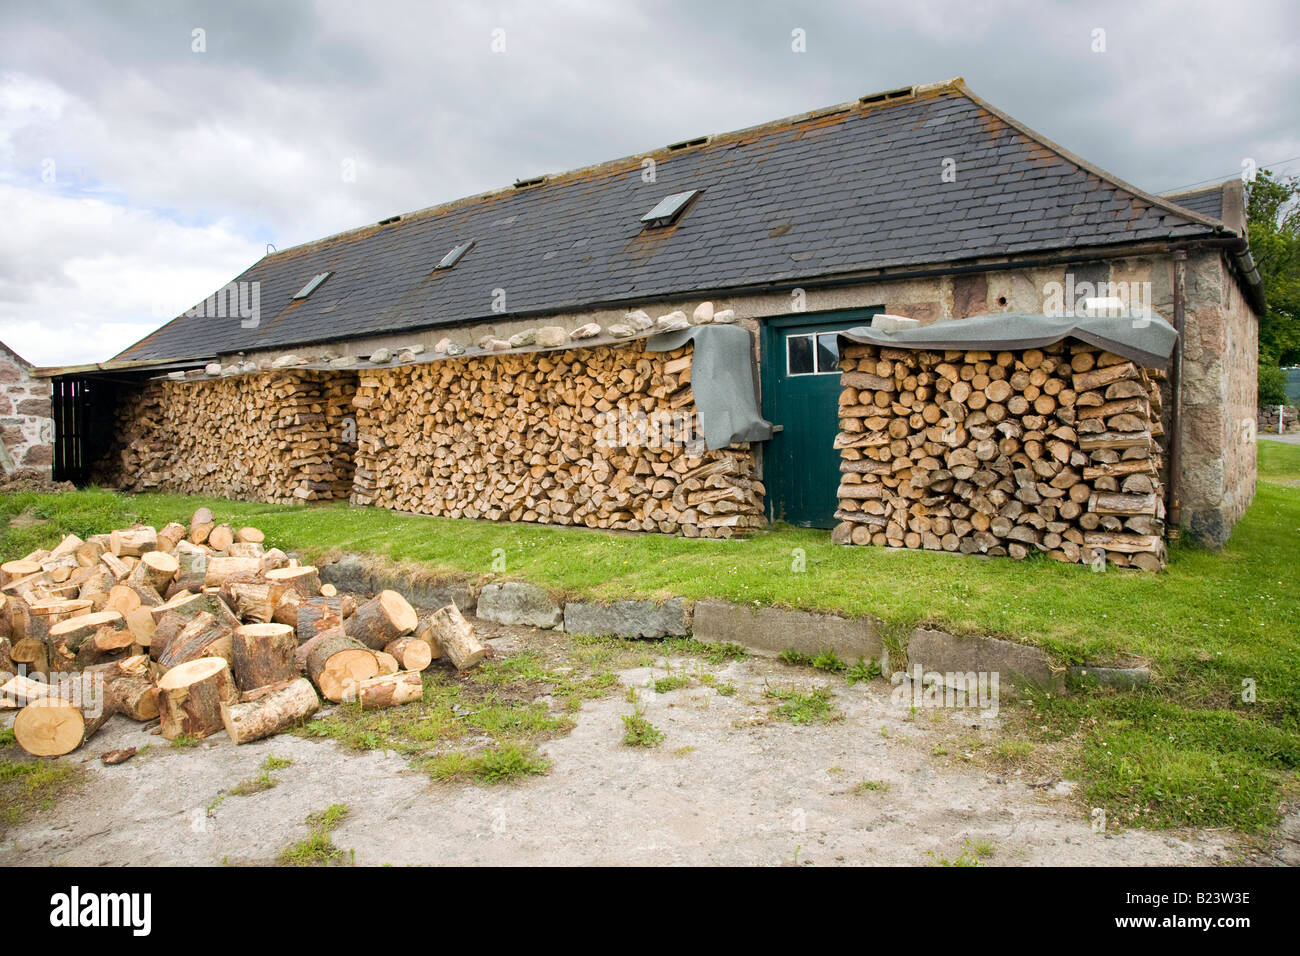 Scottish Timber Industry, Scotland uk - Stock Image